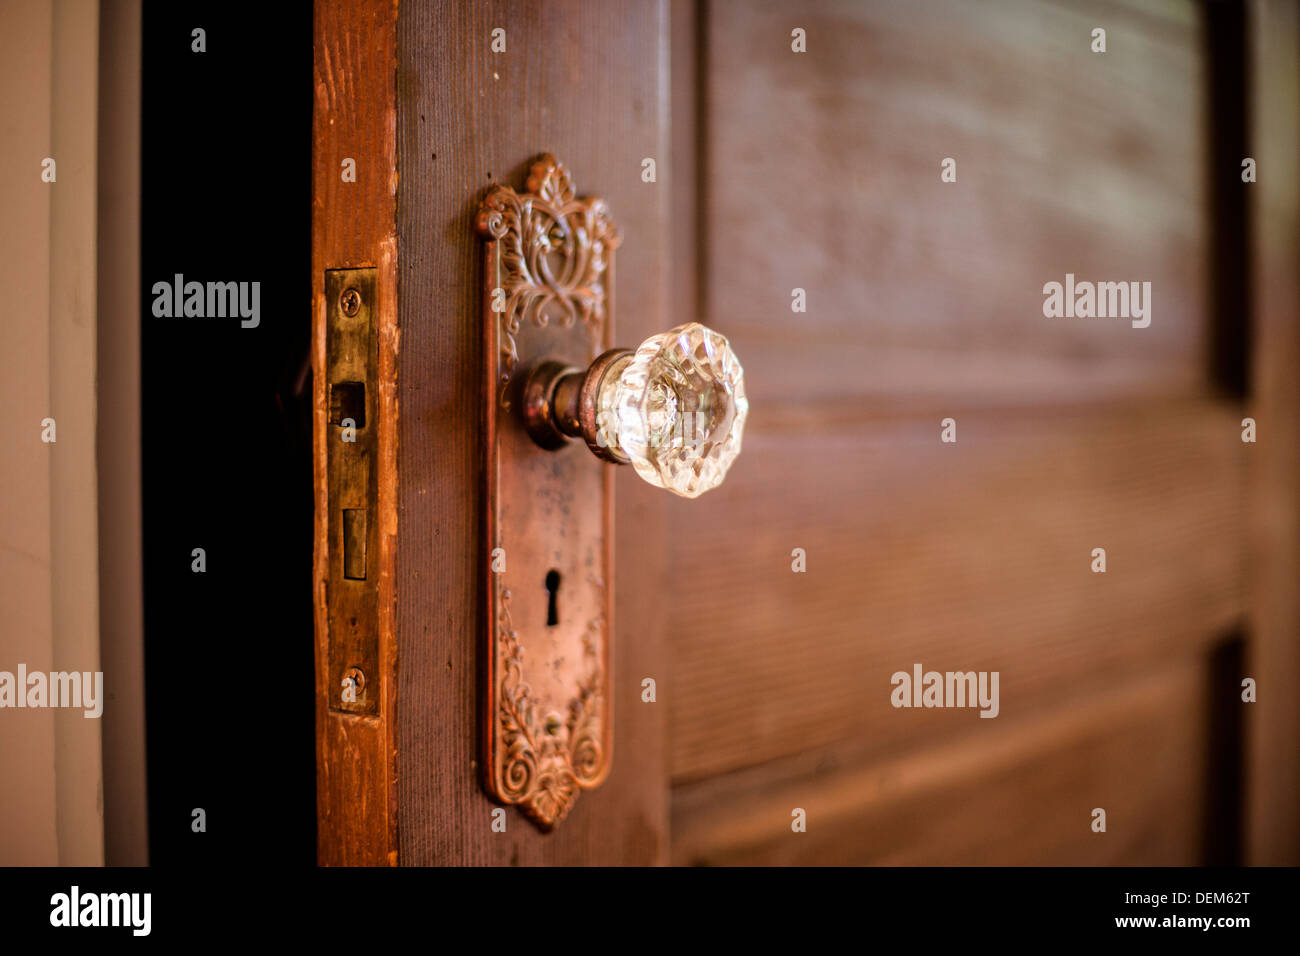 Closeup of an antique wooden door in the interior of a home with a glass doorknob and skeleton key hole. & Closeup of an antique wooden door in the interior of a home with a ...